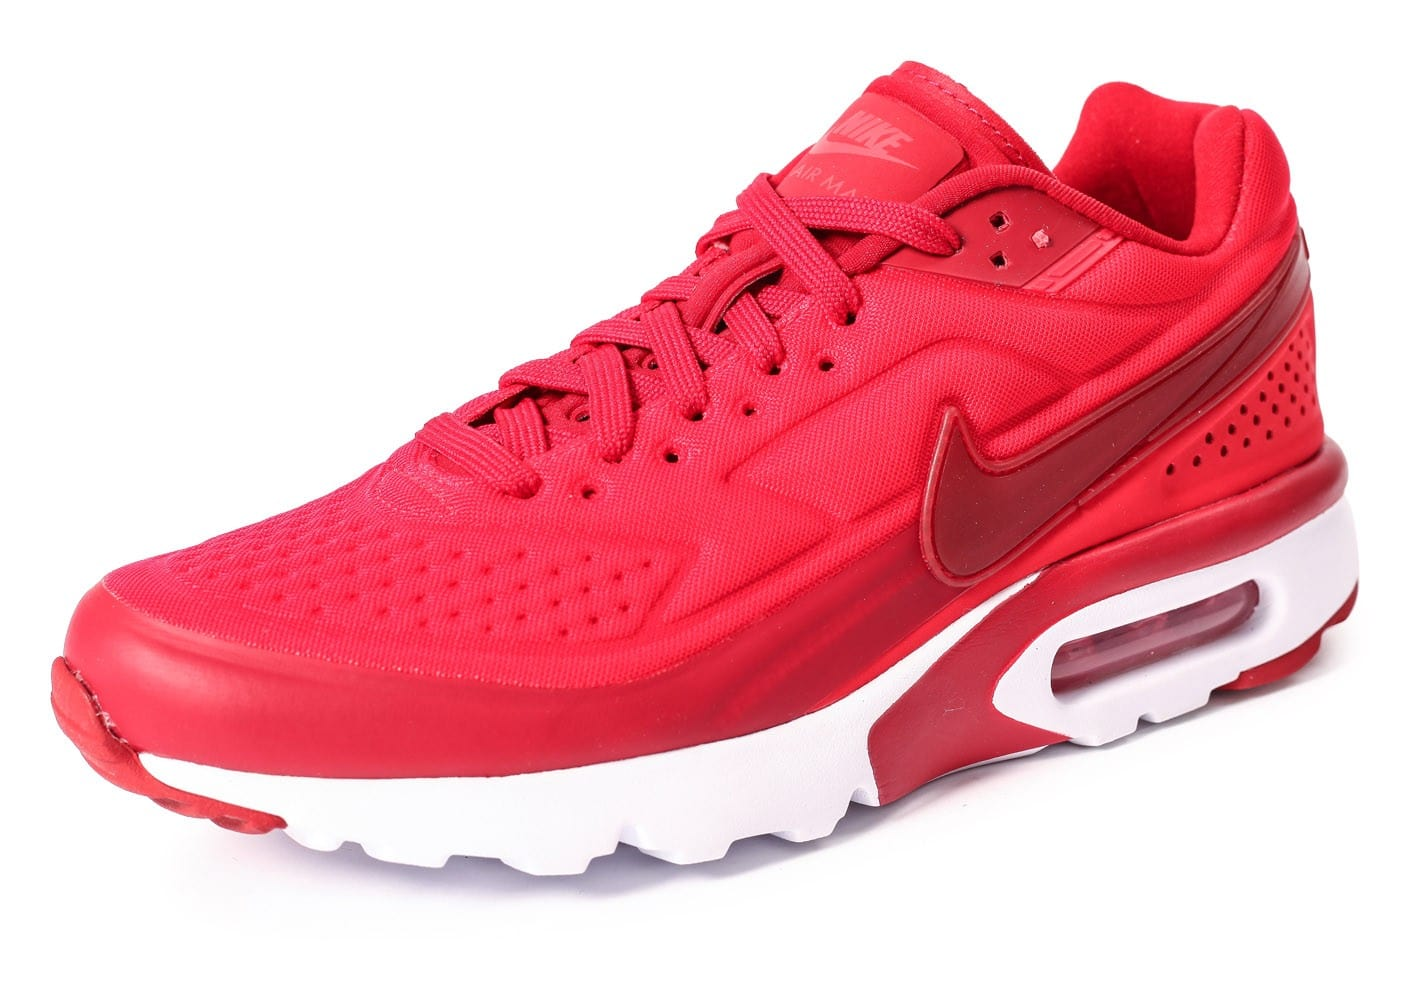 air max bw rouge,chaussures nike air max bw ultra rouge vue